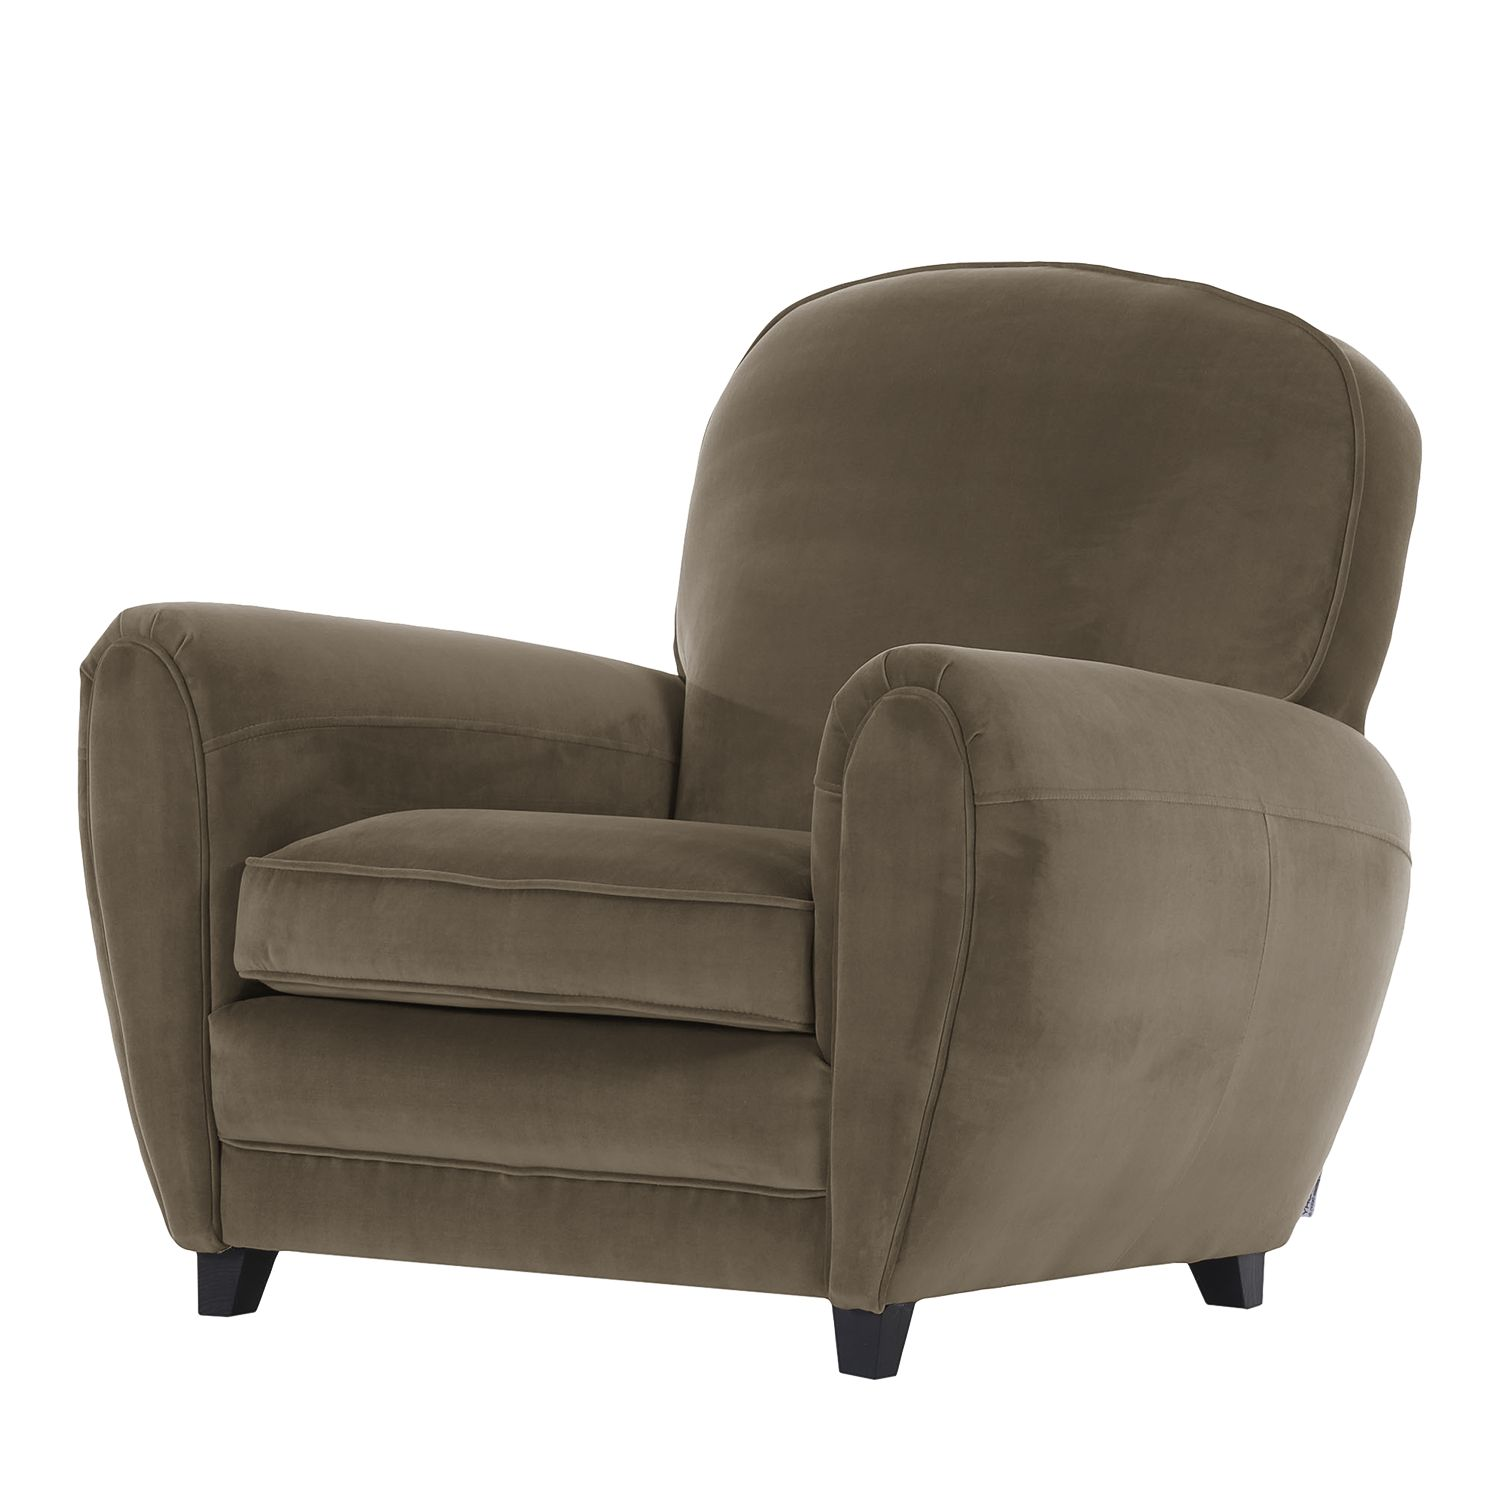 goedkoop Fauteuil Marre microvezel Nootmuskaat Jack and Alice